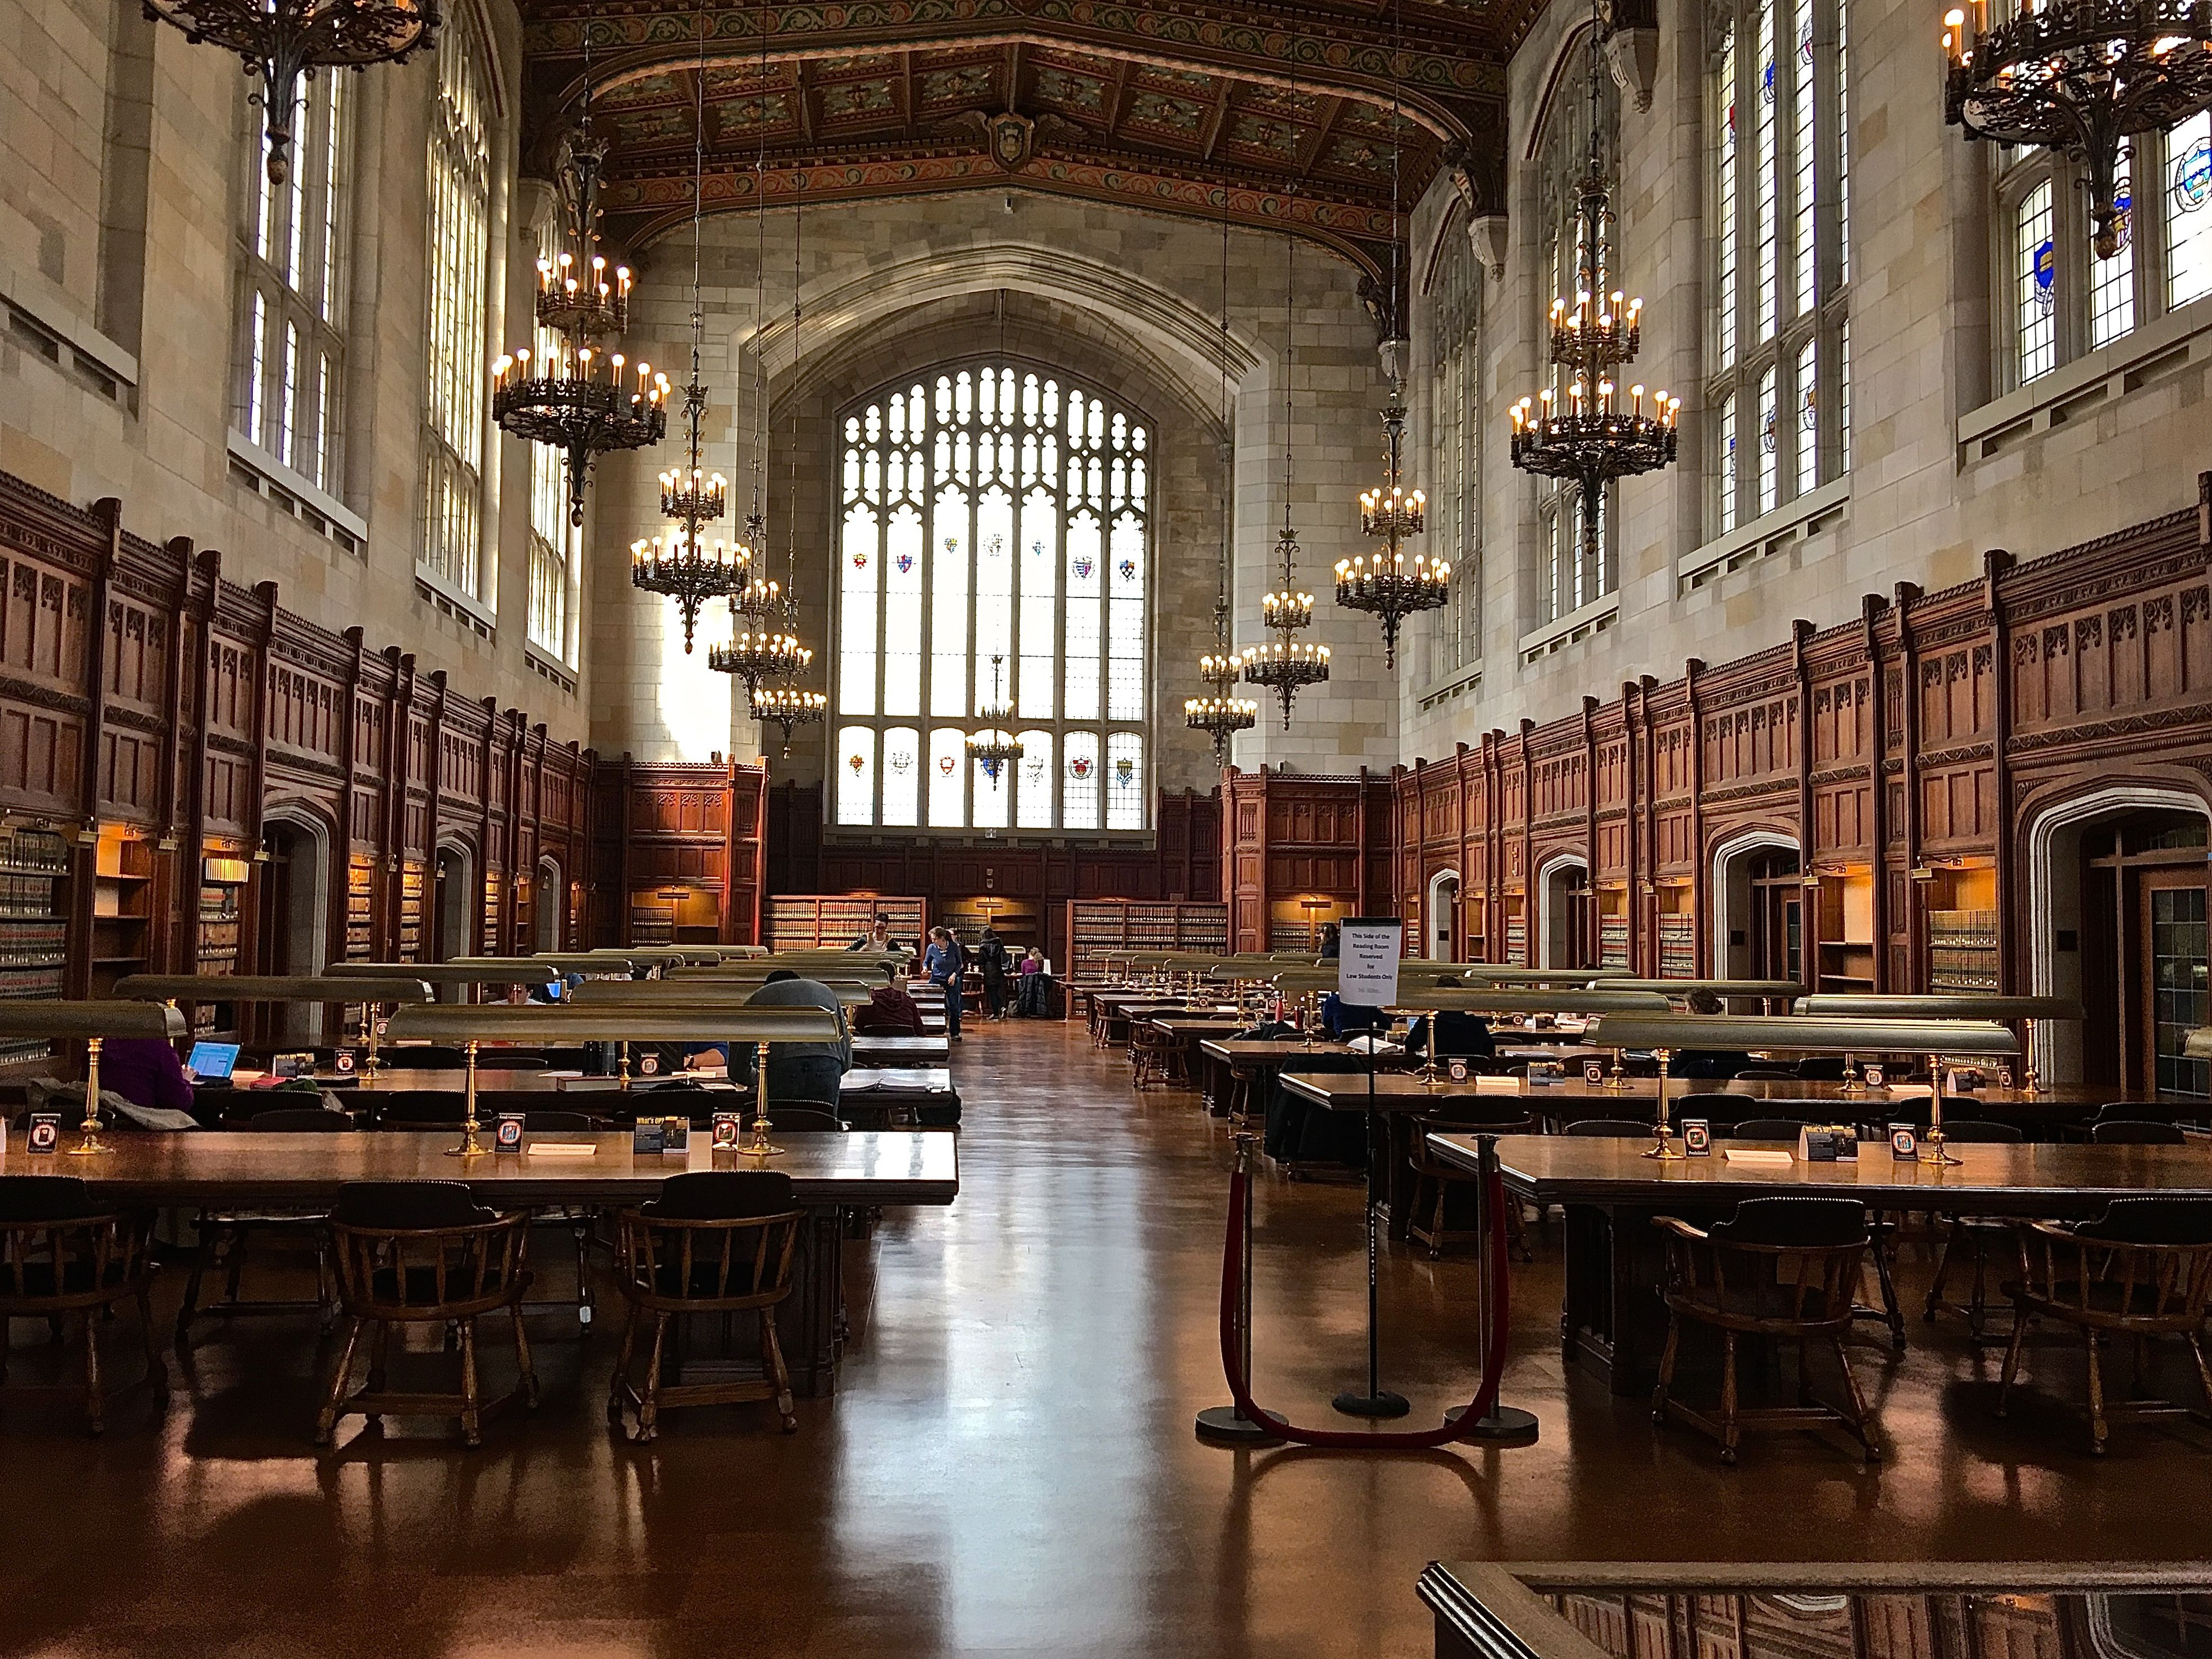 This Is The University Of Michigan Law Library S Reading Room Law School Library University School Library